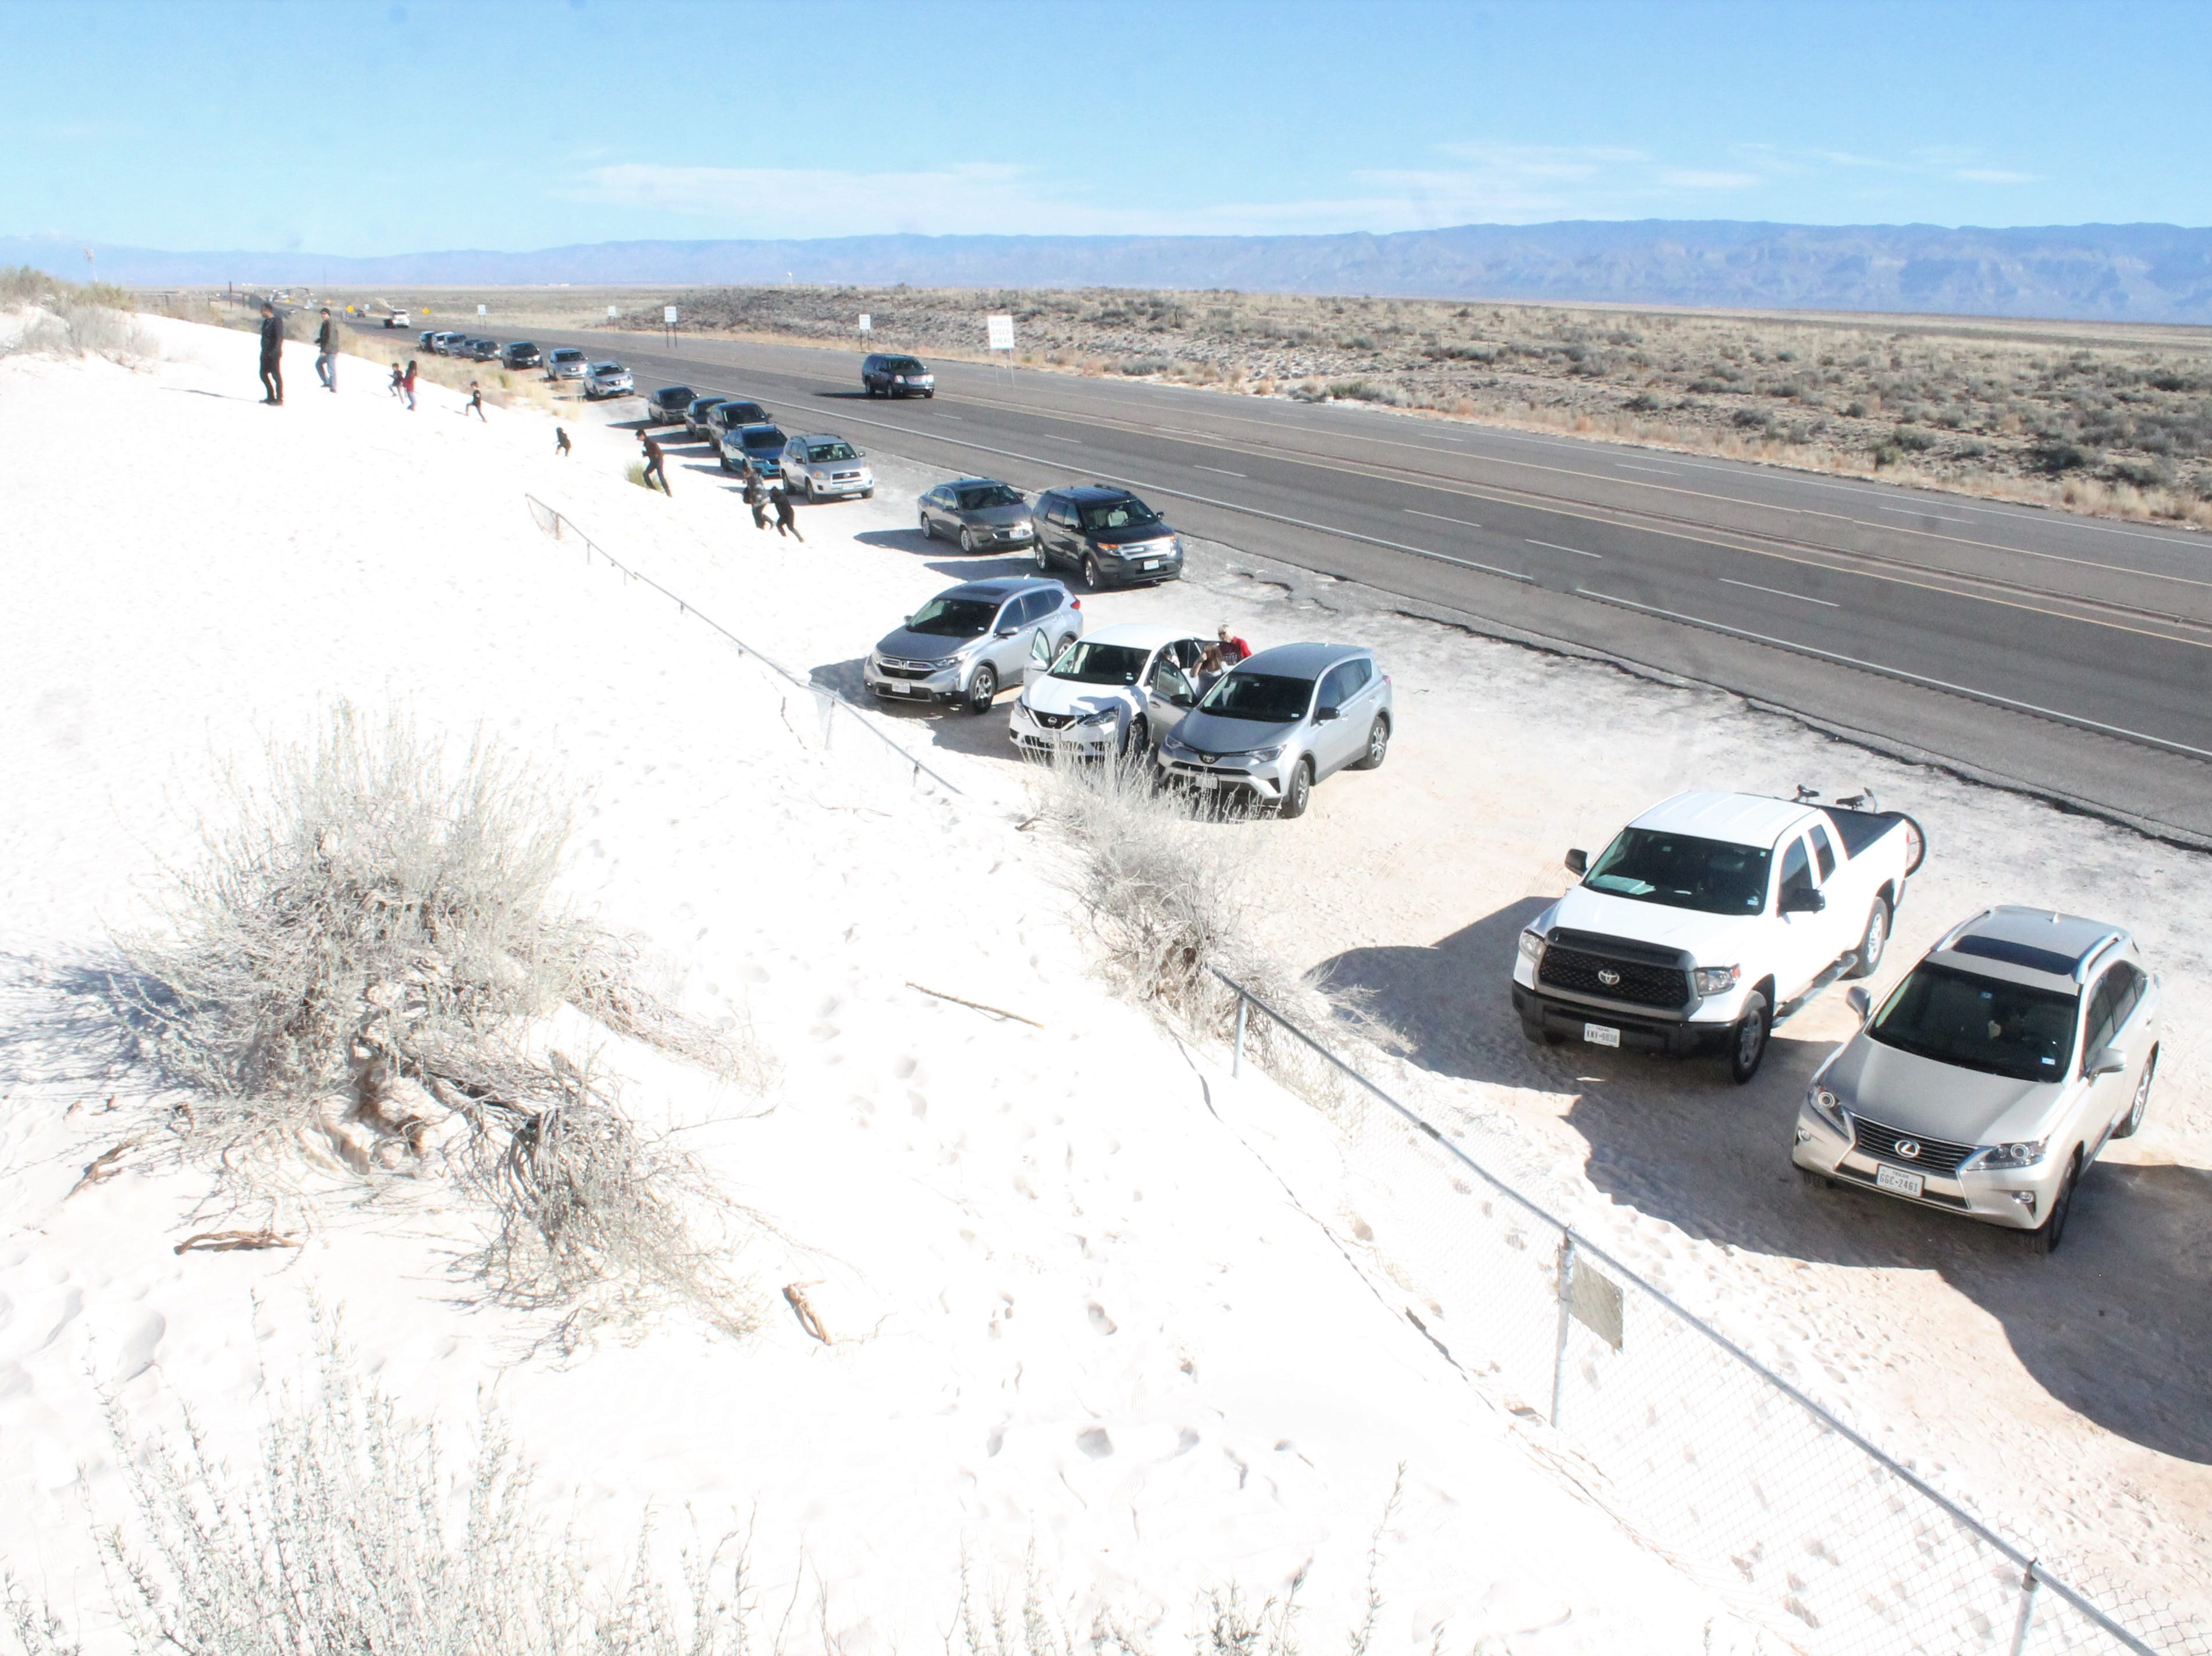 White Sands National Monument drew many unauthorized visitors Monday, Dec. 24, 2018, despite the monument being closed due to the government shutdown.